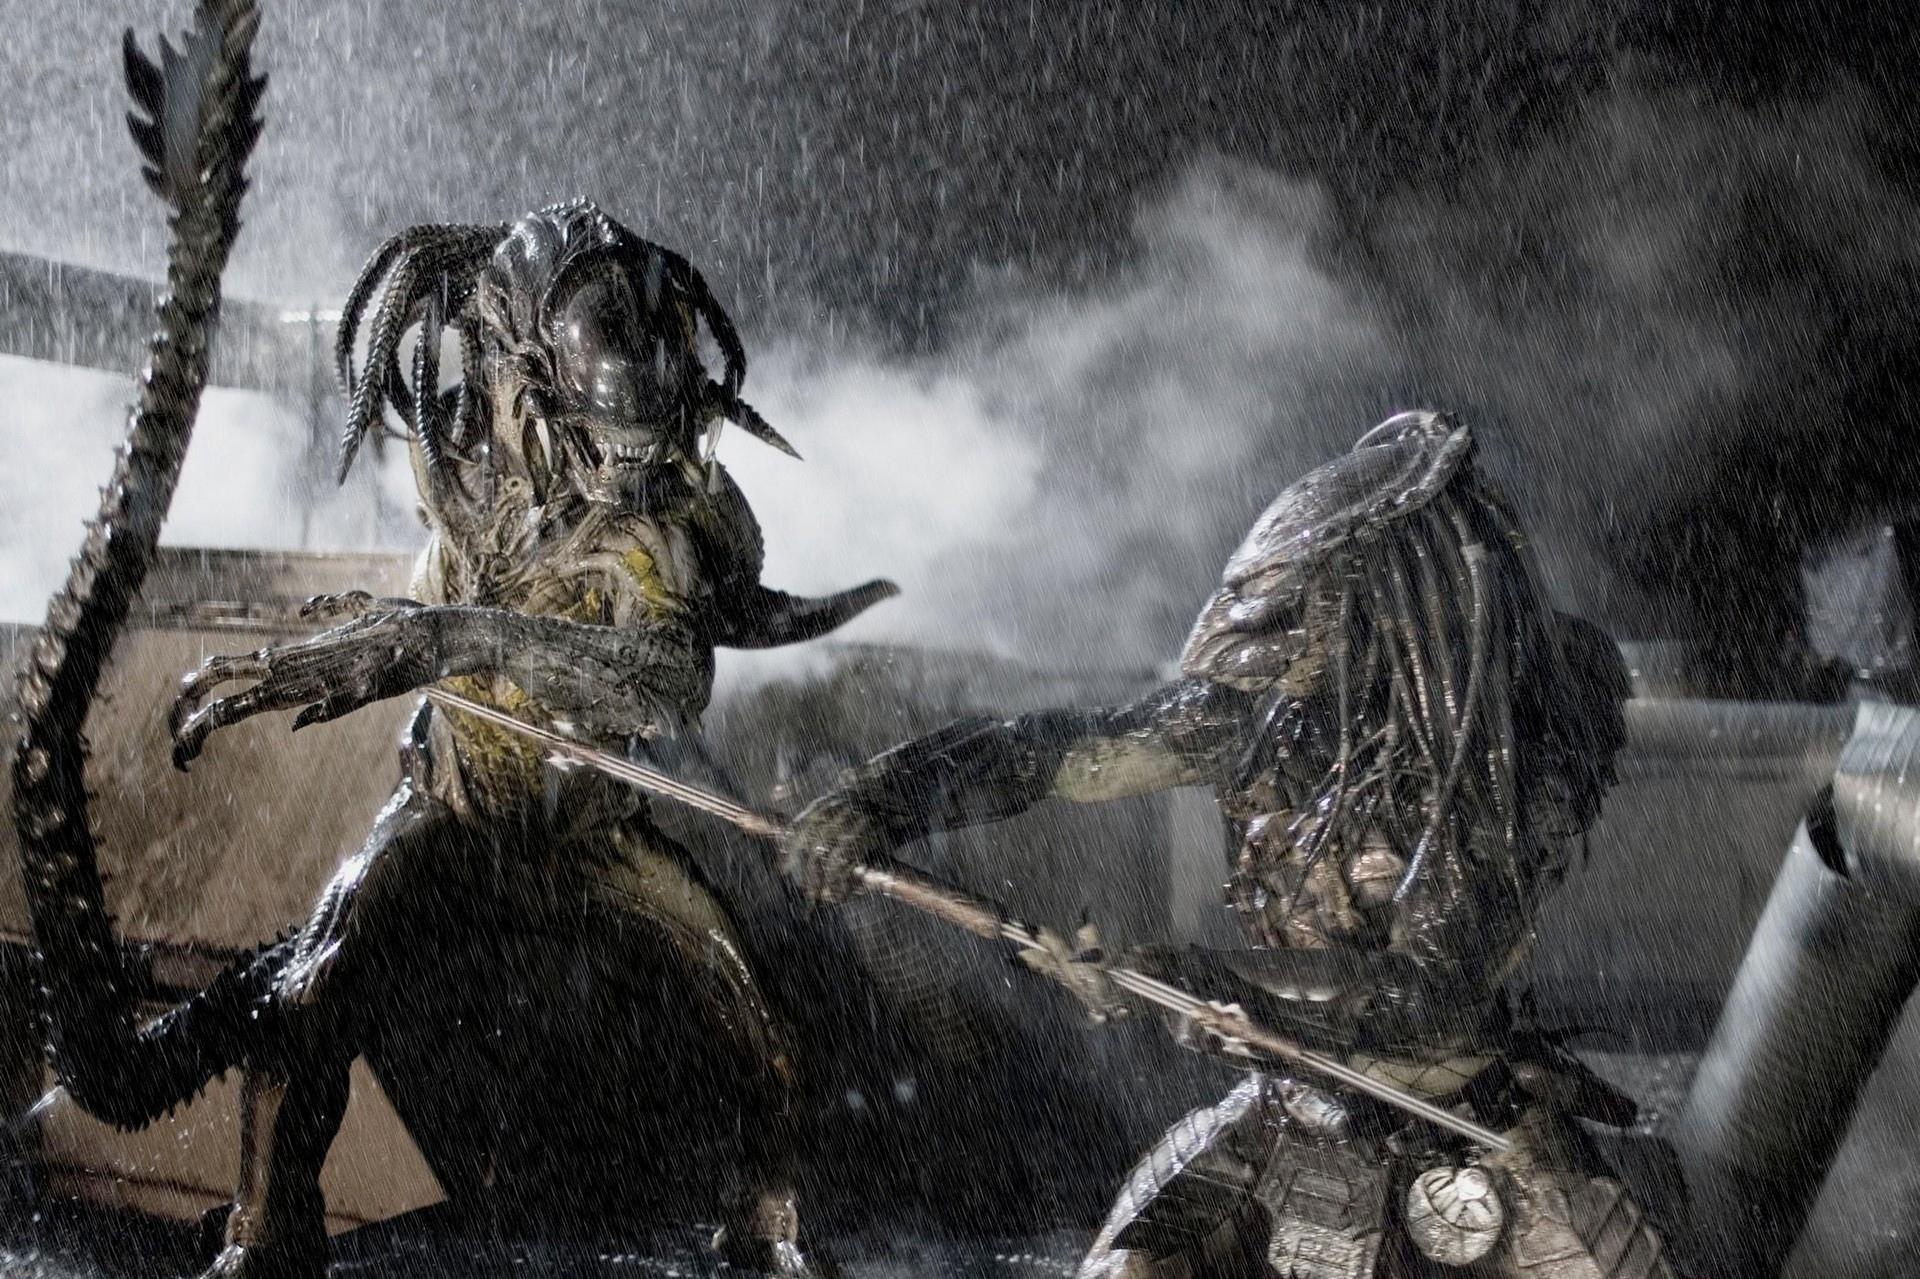 Alien Vs. Predator wallpapers HD quality